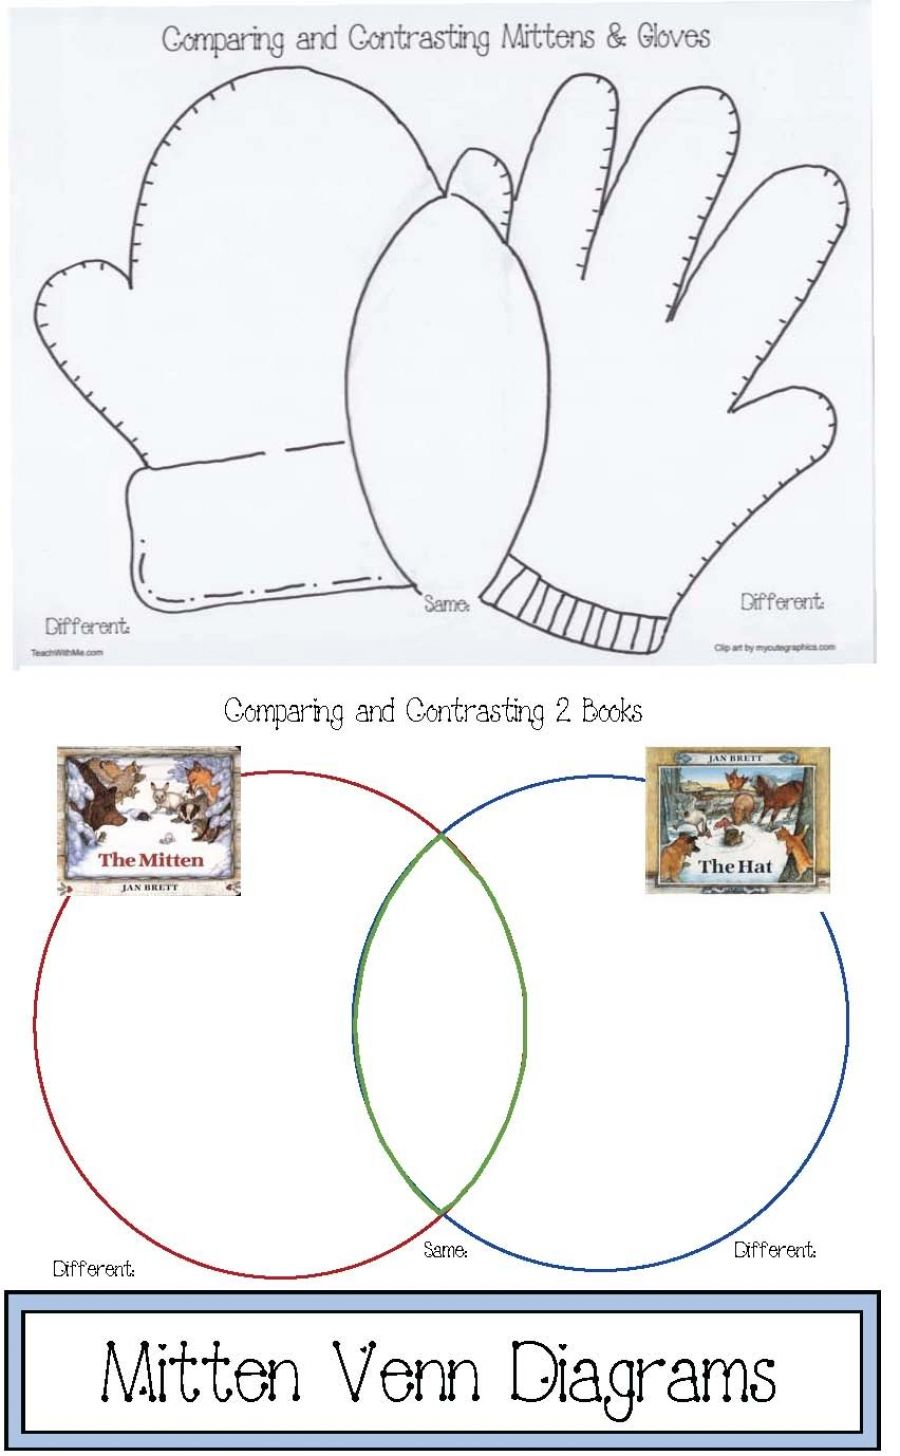 Mitten venn diagrams venn diagrams mittens and diagram mitten venn diagrams 5 pages packet includes 3 mitten venn diagrams including 1 where students compare and contrast 2 animal characters from the story ccuart Gallery